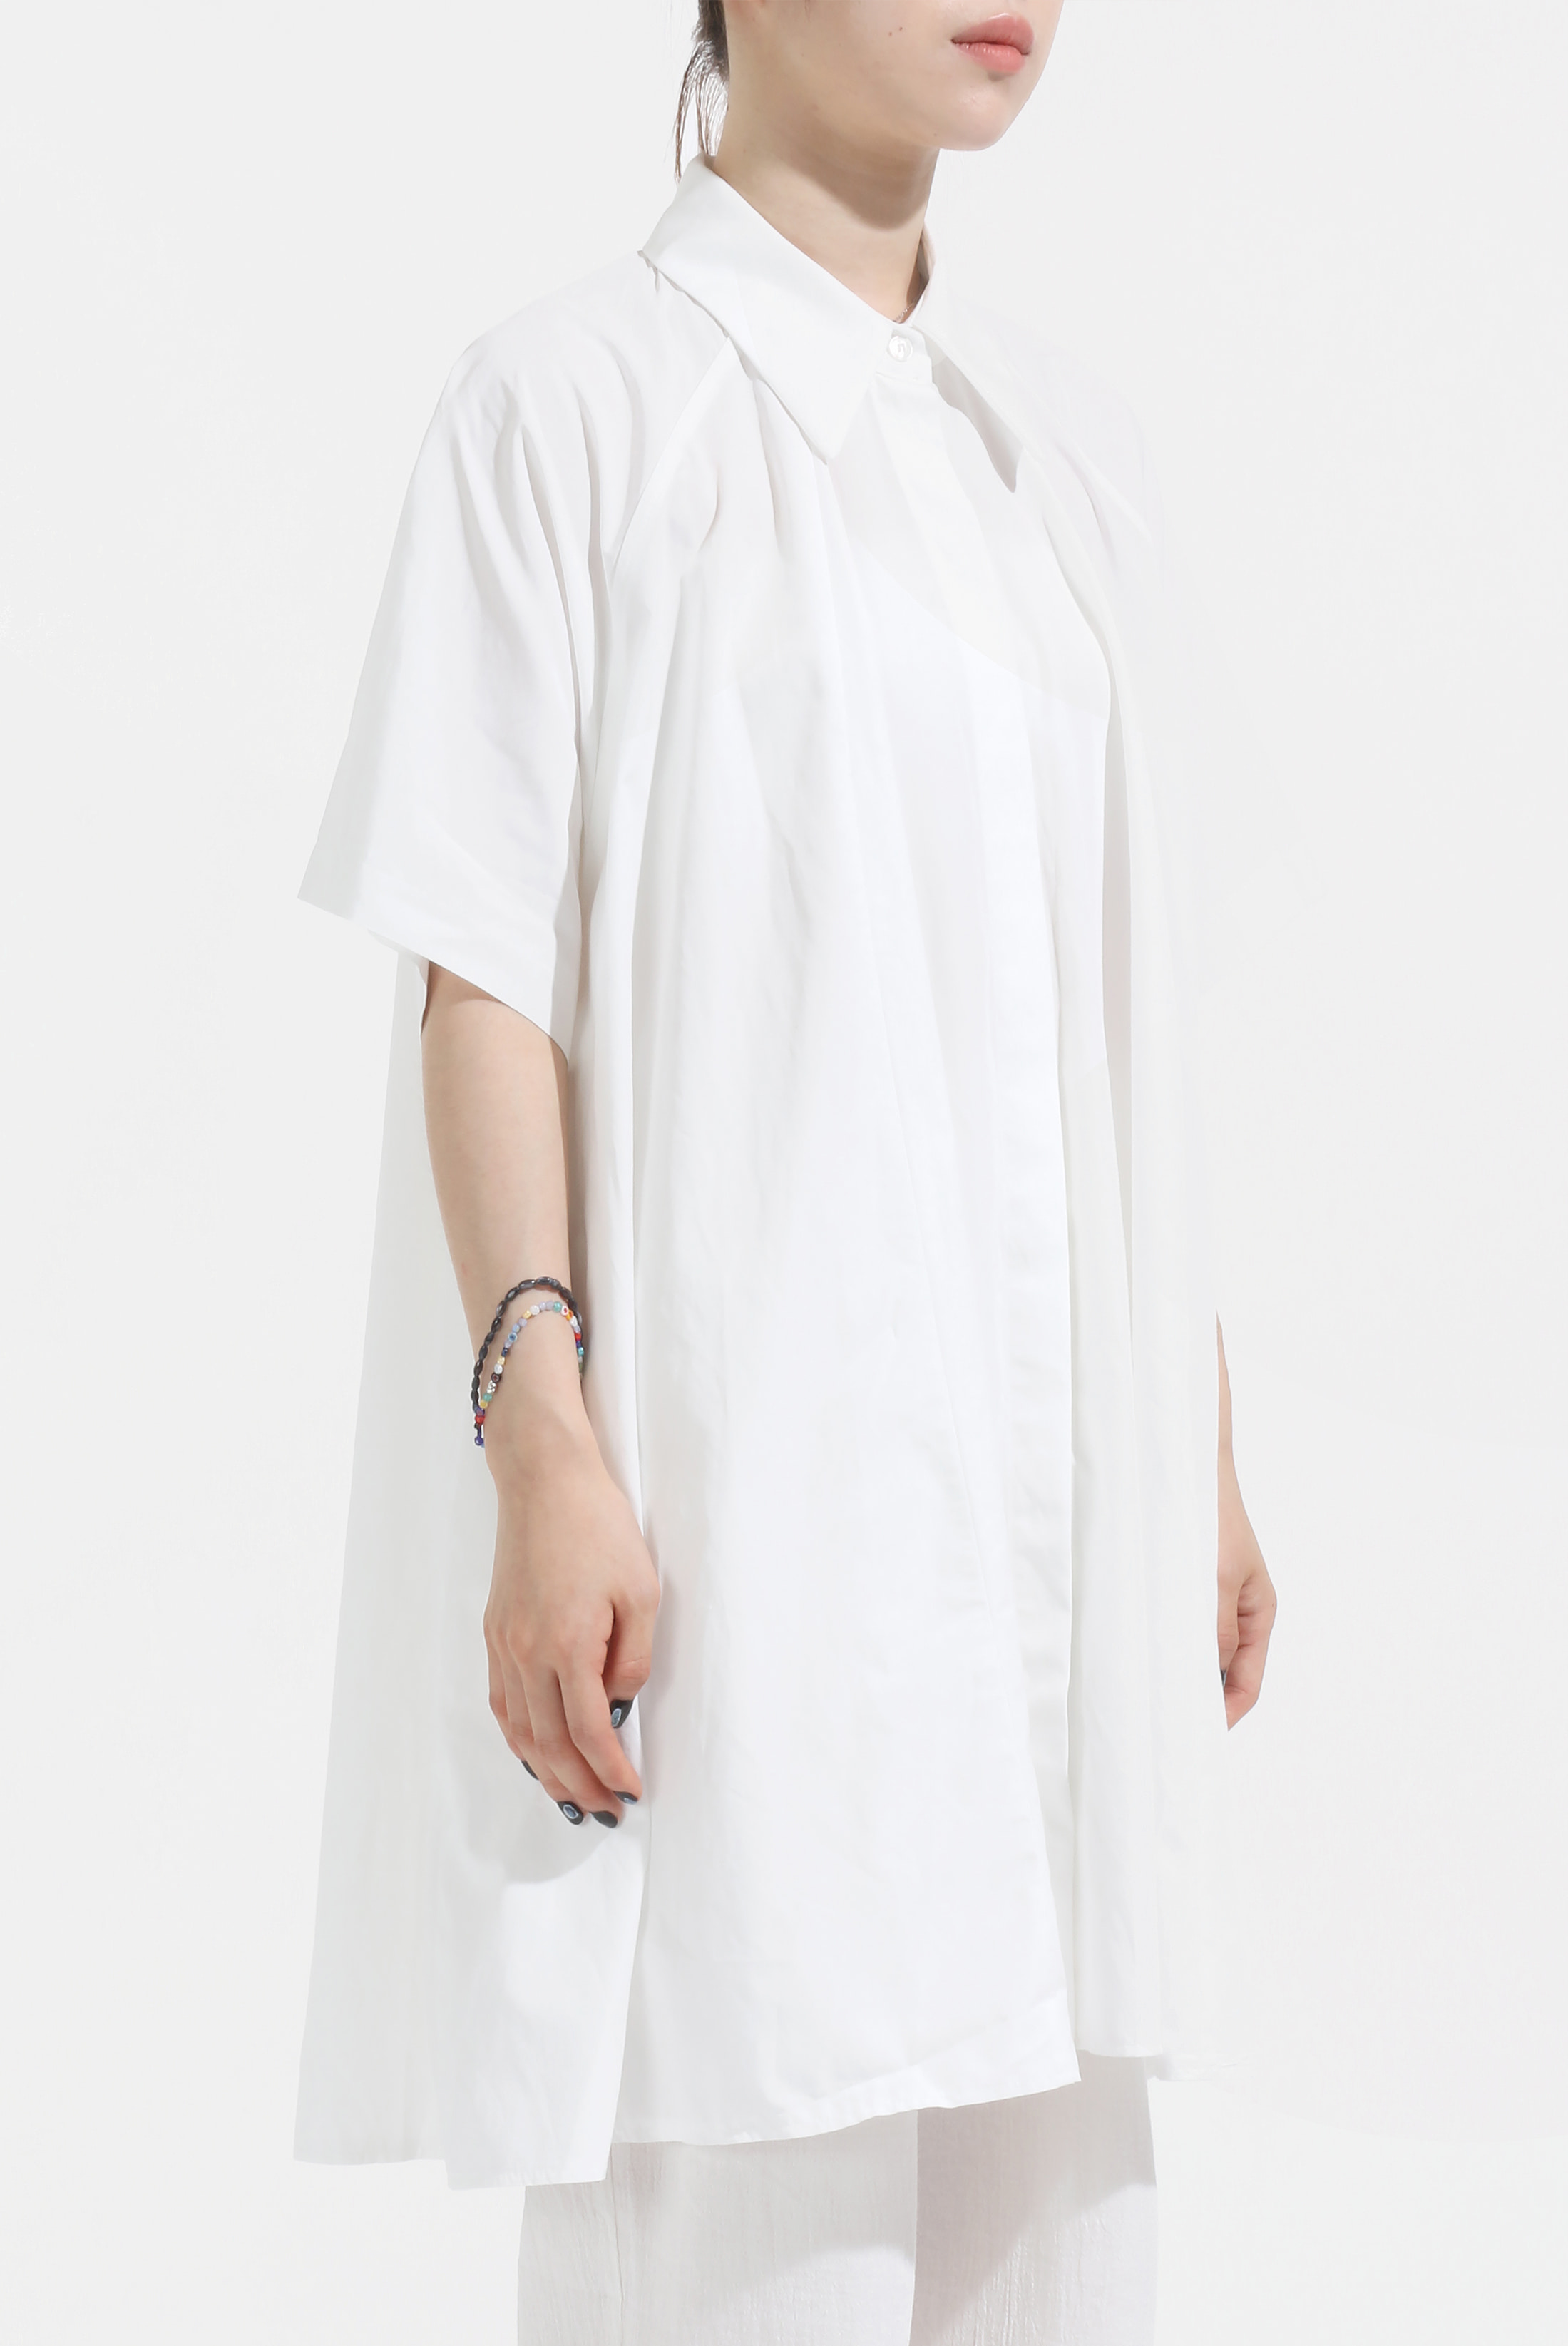 (W) Oversize Mui One-Piece